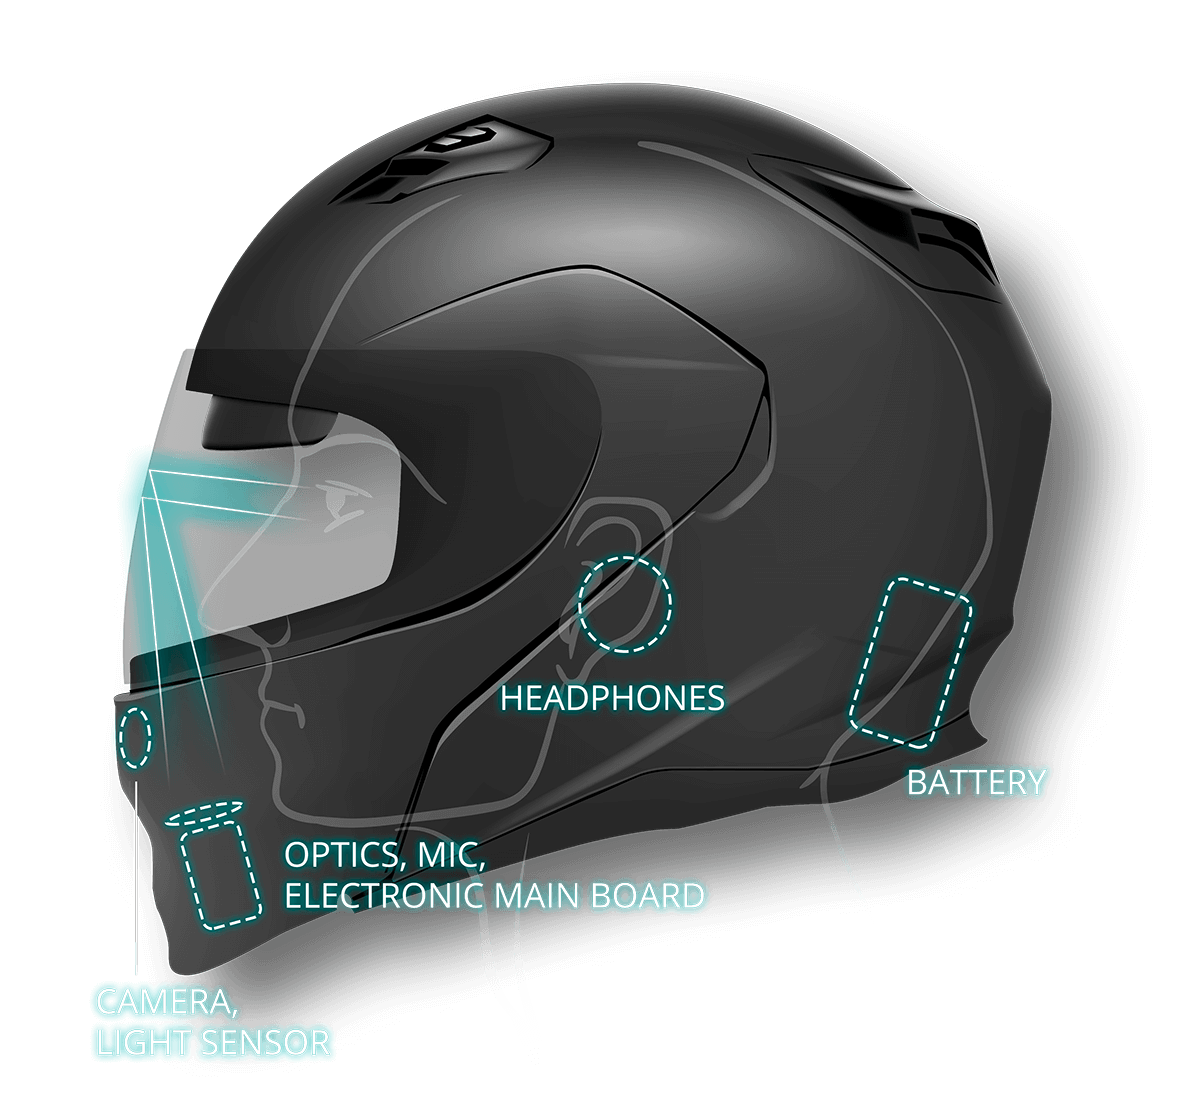 Motorcycle Helmet With Hud >> Livemap Motorcycle Smart Helmet With Augmented Reality Navigation